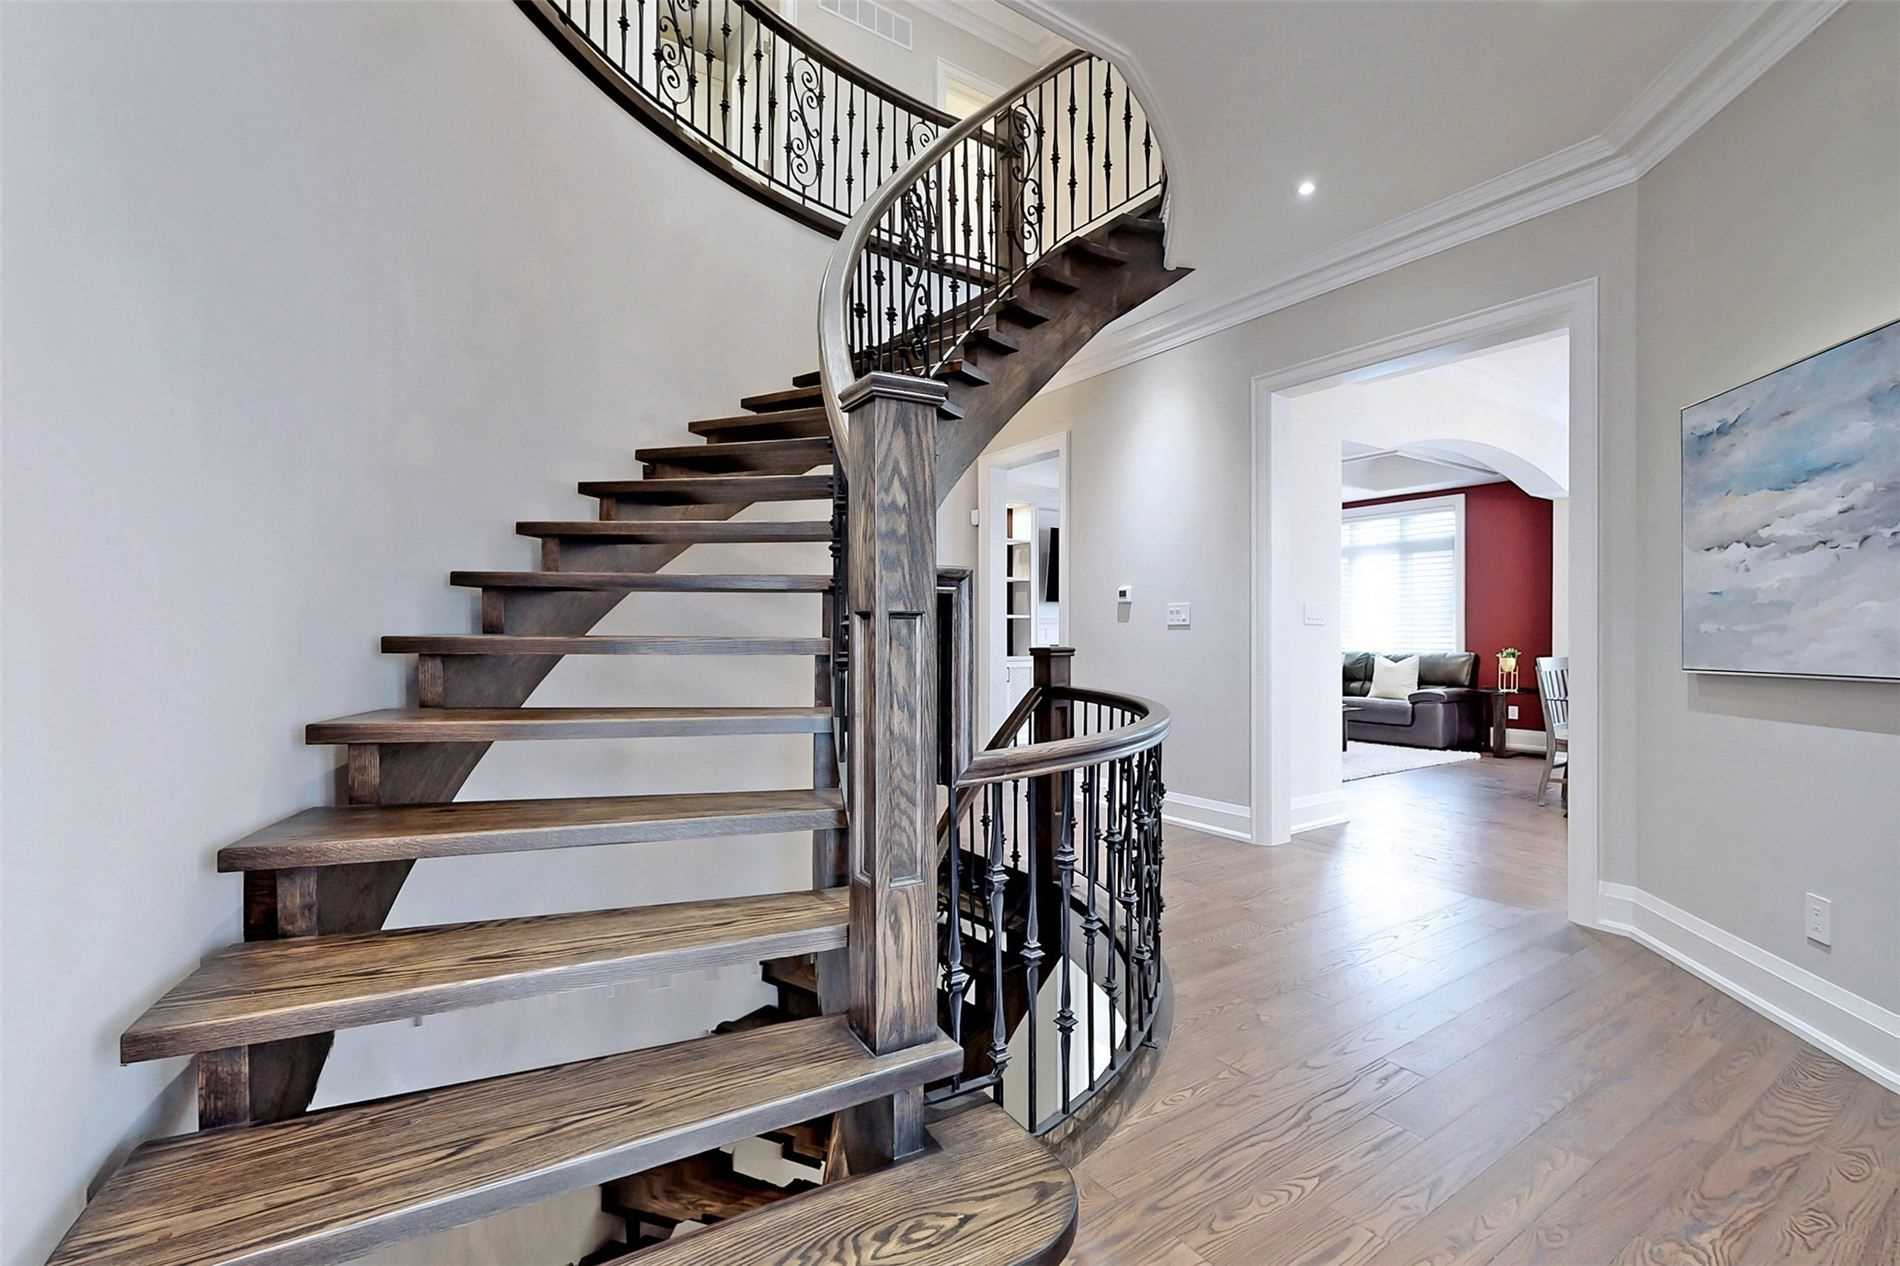 Detached house For Sale In Toronto - 183 Connaught Ave, Toronto, Ontario, Canada M2M1H3 , 4 Bedrooms Bedrooms, ,6 BathroomsBathrooms,Detached,For Sale,Connaught